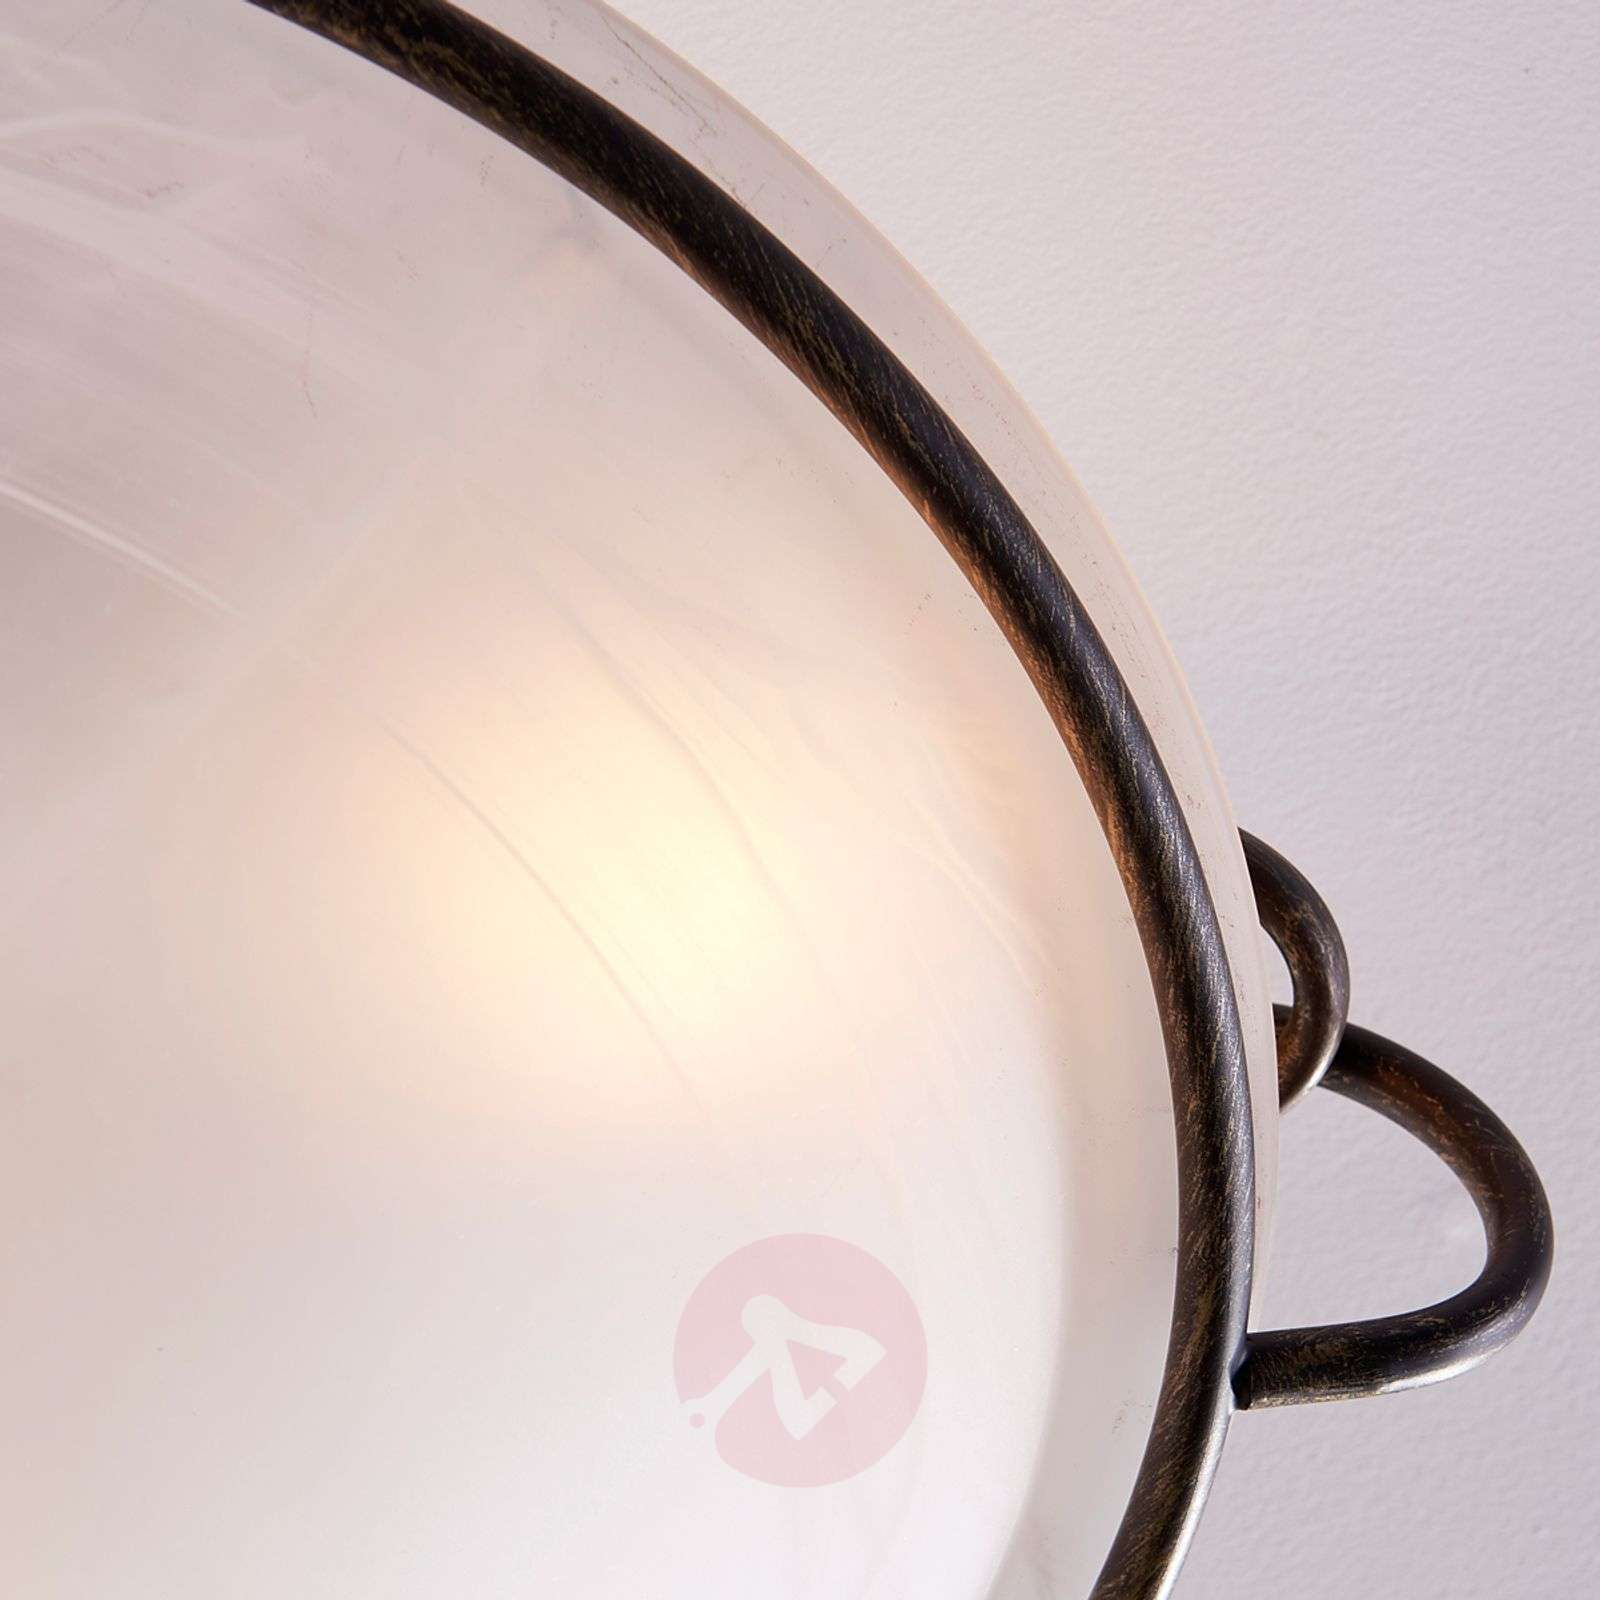 Stylish Rando ceiling lamp in country-house style-9620989-03